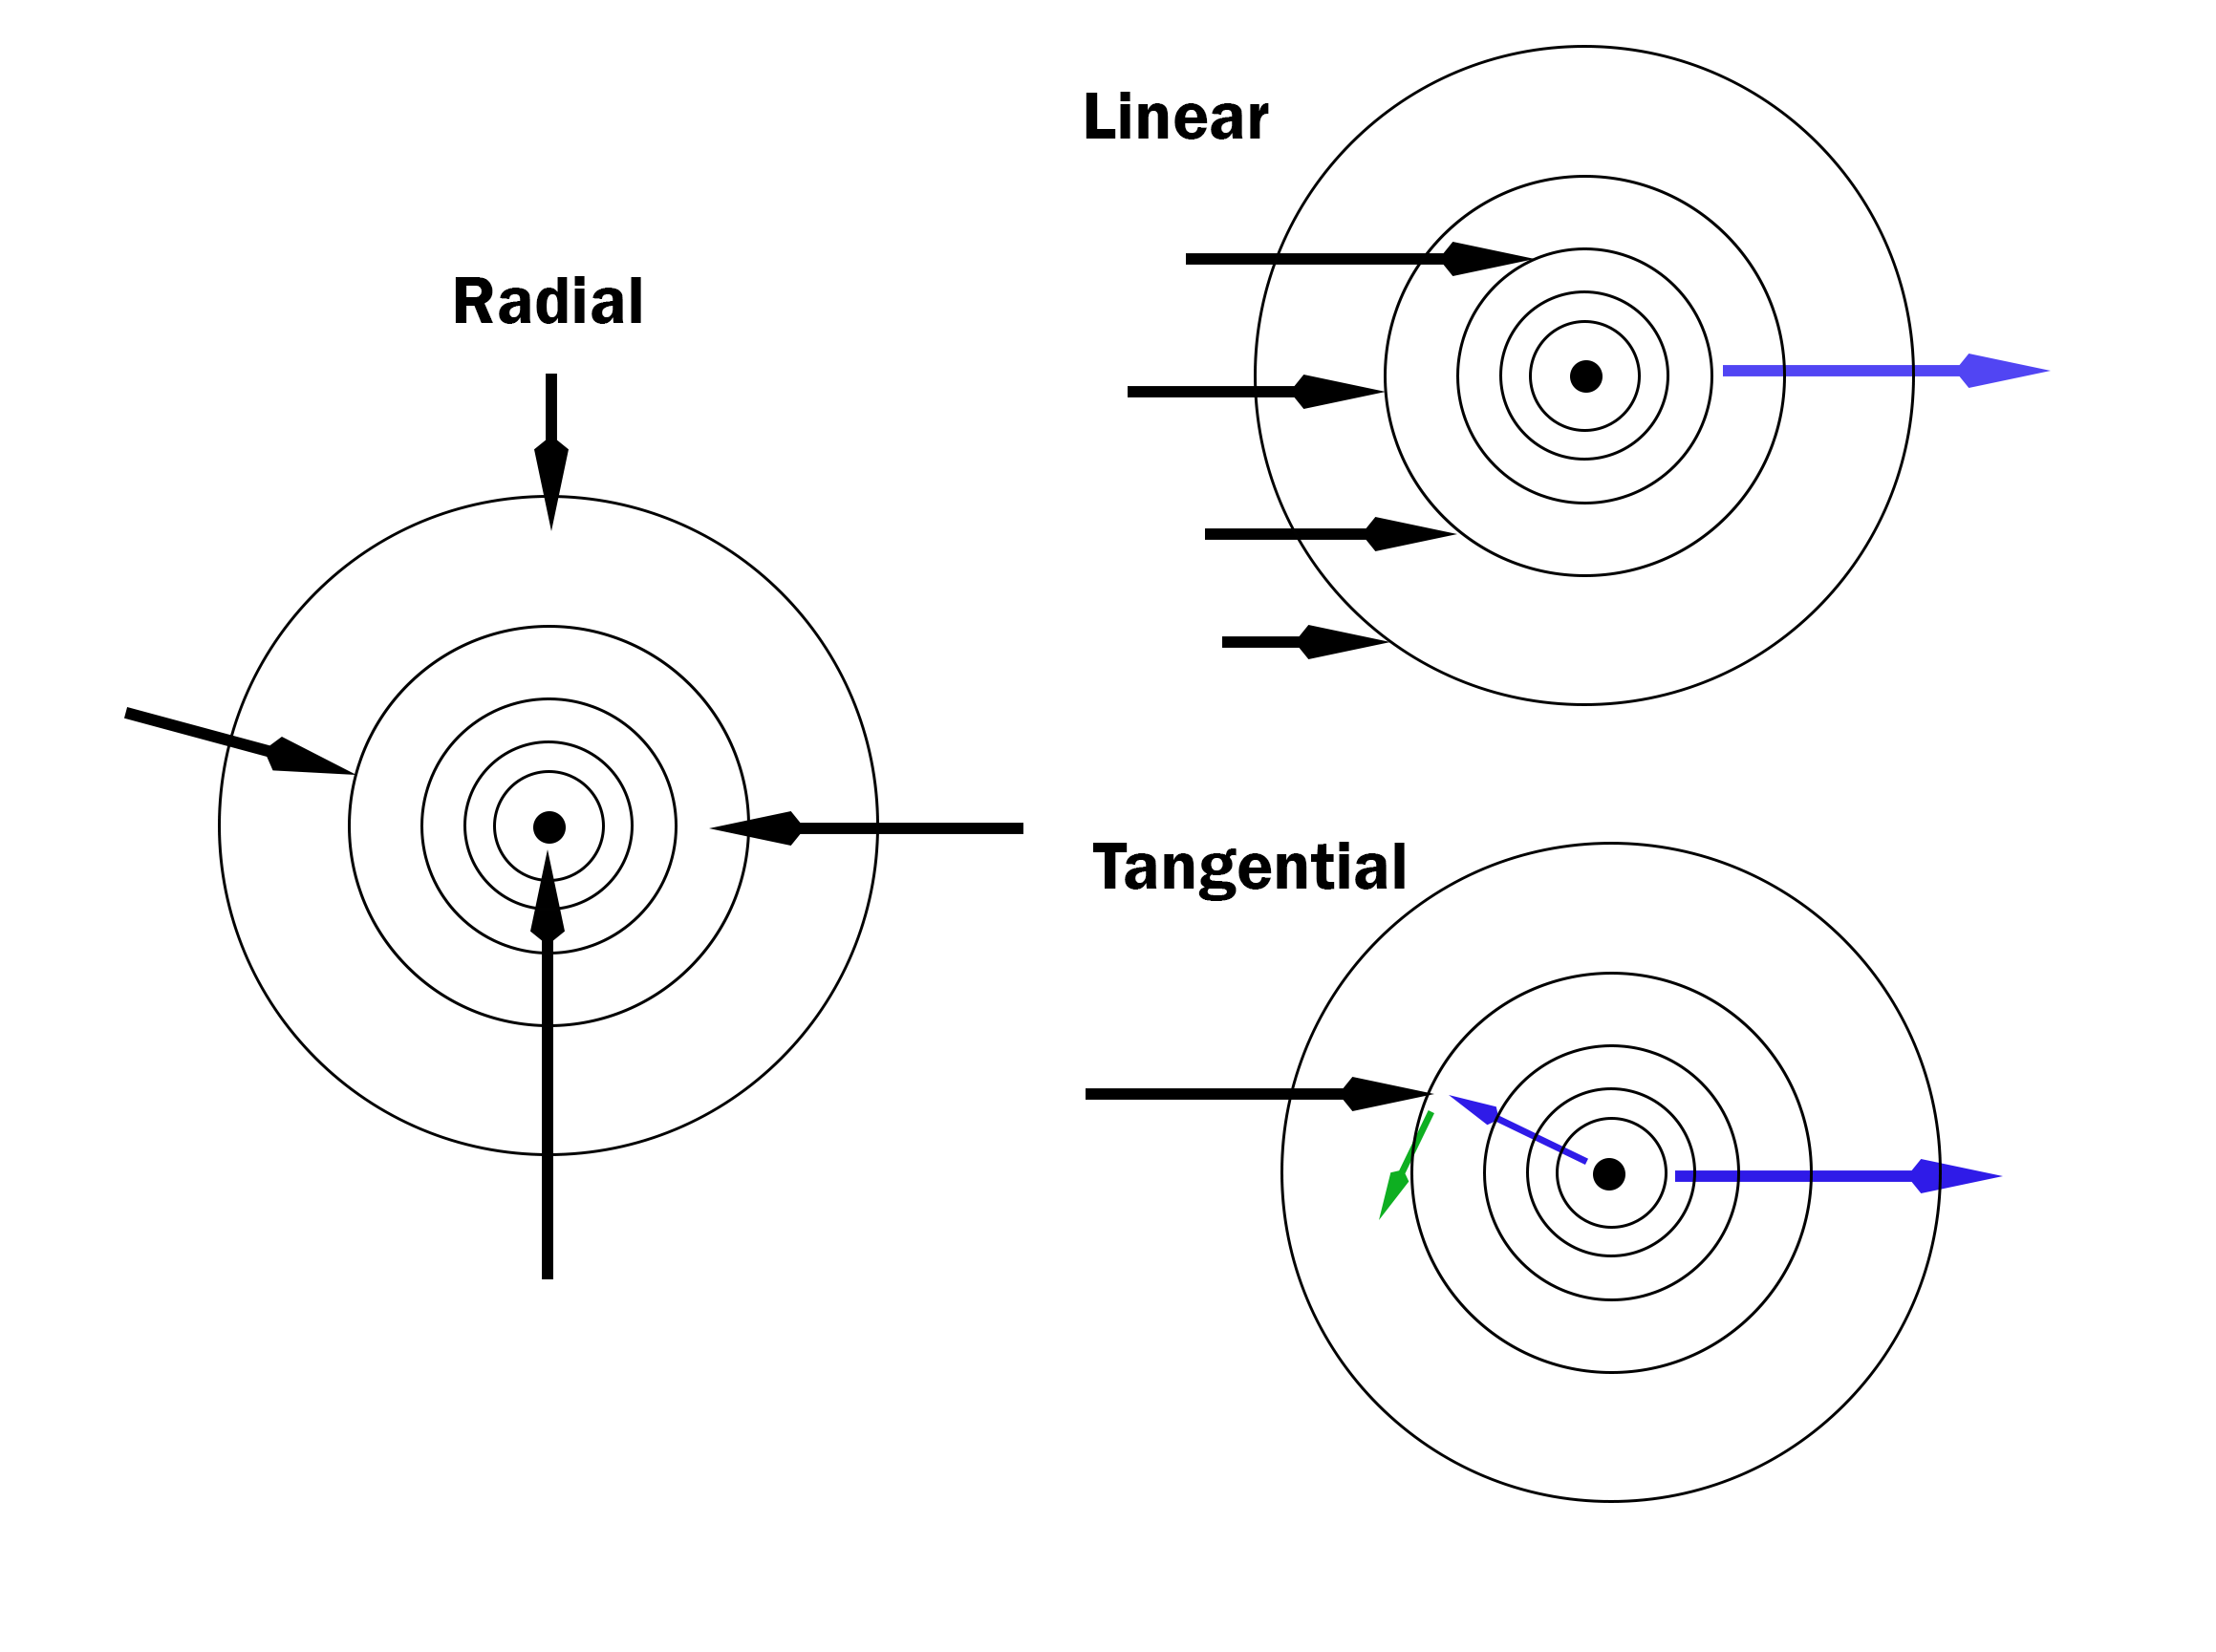 radial_linear_tangential